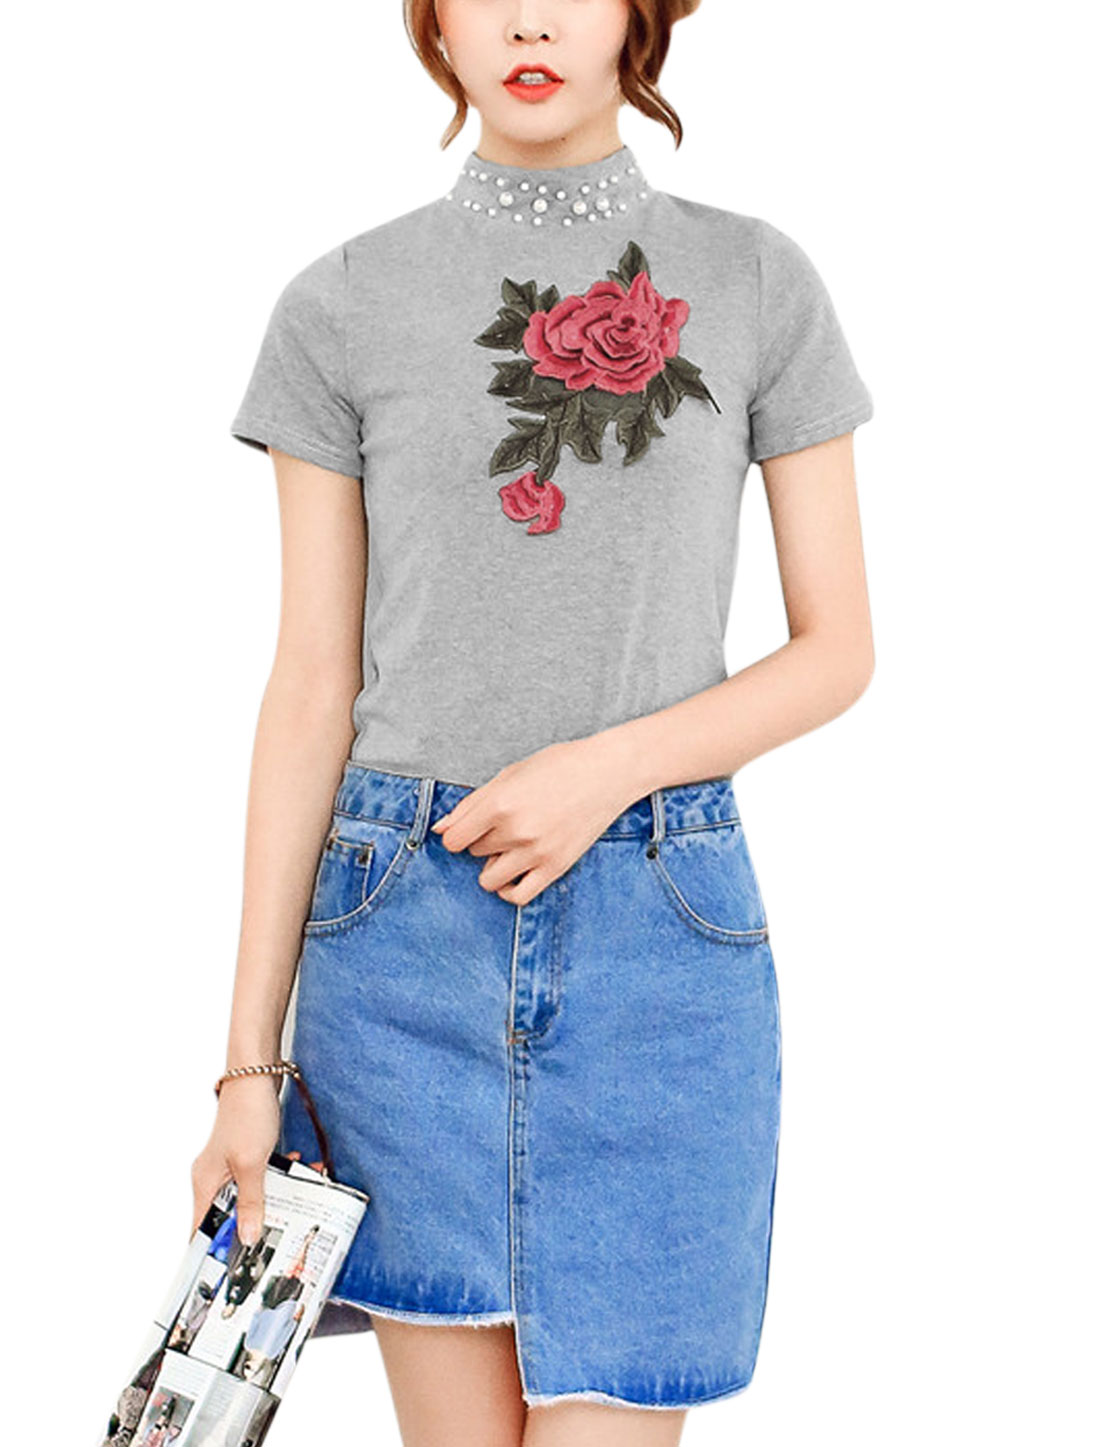 Women Beaded Neckline Rose Applique Short Sleeves Casual T-Shirts Gray XS